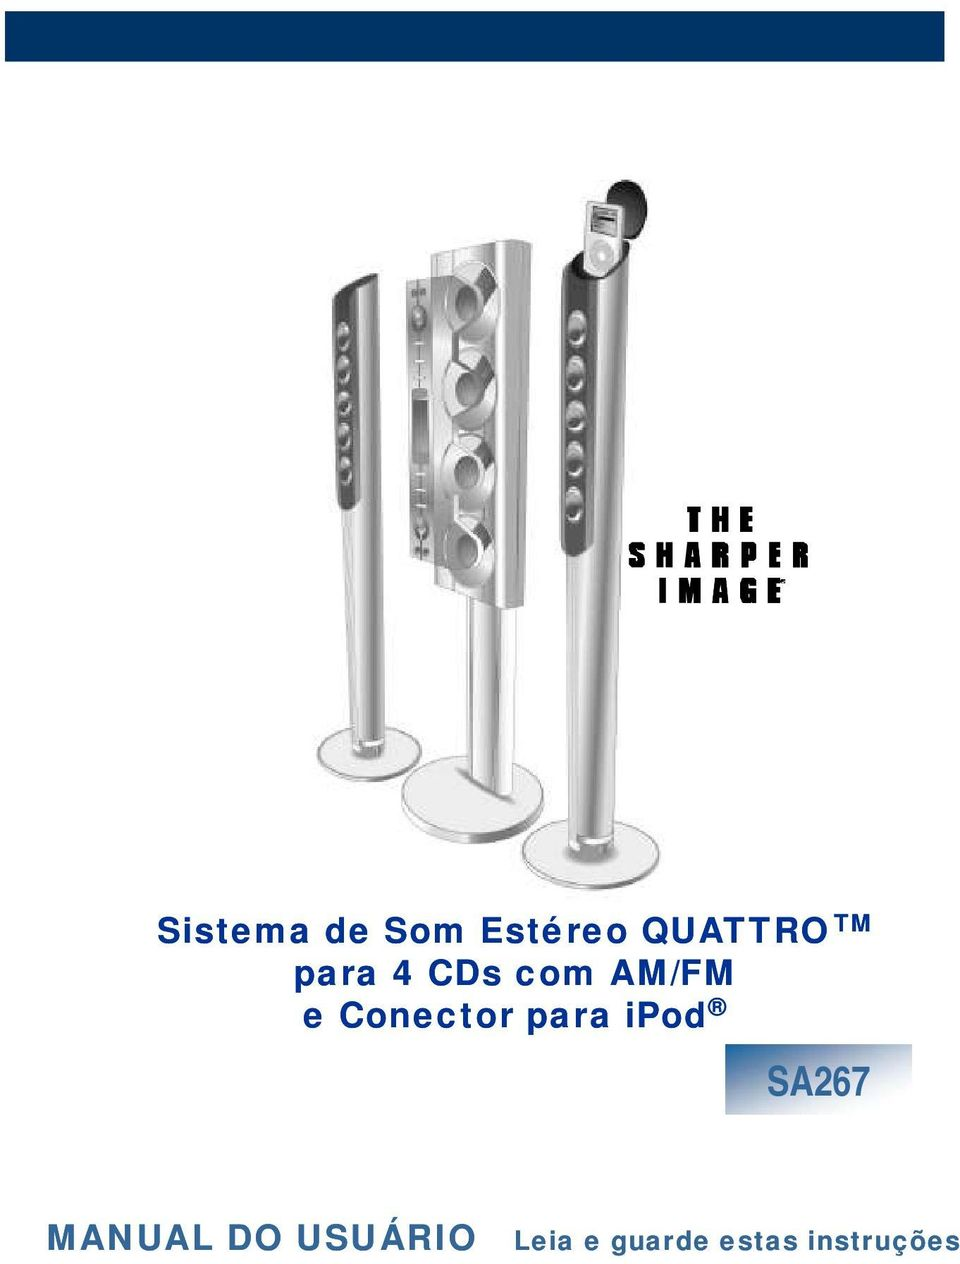 Conector para ipod SA267 MANUAL